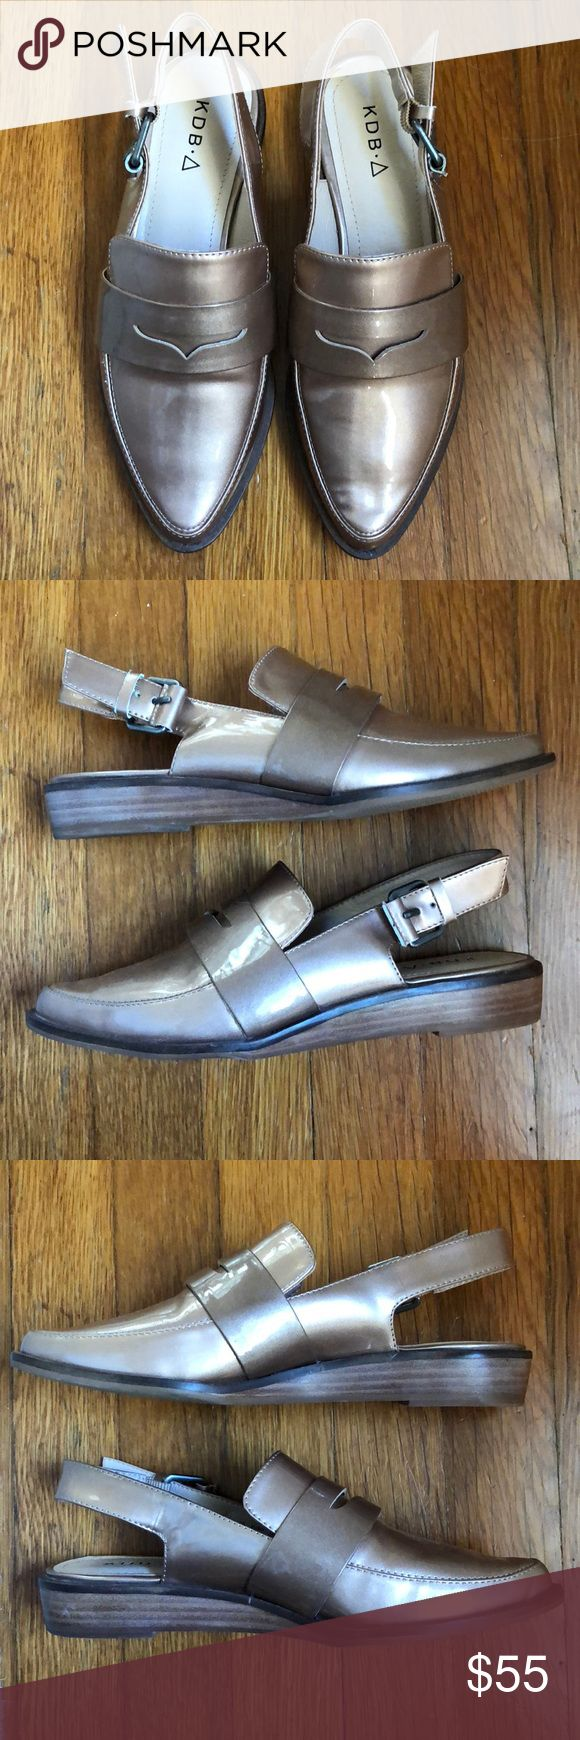 Kelsi Dagger Loafer Rose Gold Metallic Shoes 6 Like new! Little to no wear on soles as you can see in the pictures. Very well made and cute but I don't think I can pull off the metallic shoe. Sold out in Nordstrom Rack!   -Size 6 Kelsi Dagger Shoes Flats & Loafers